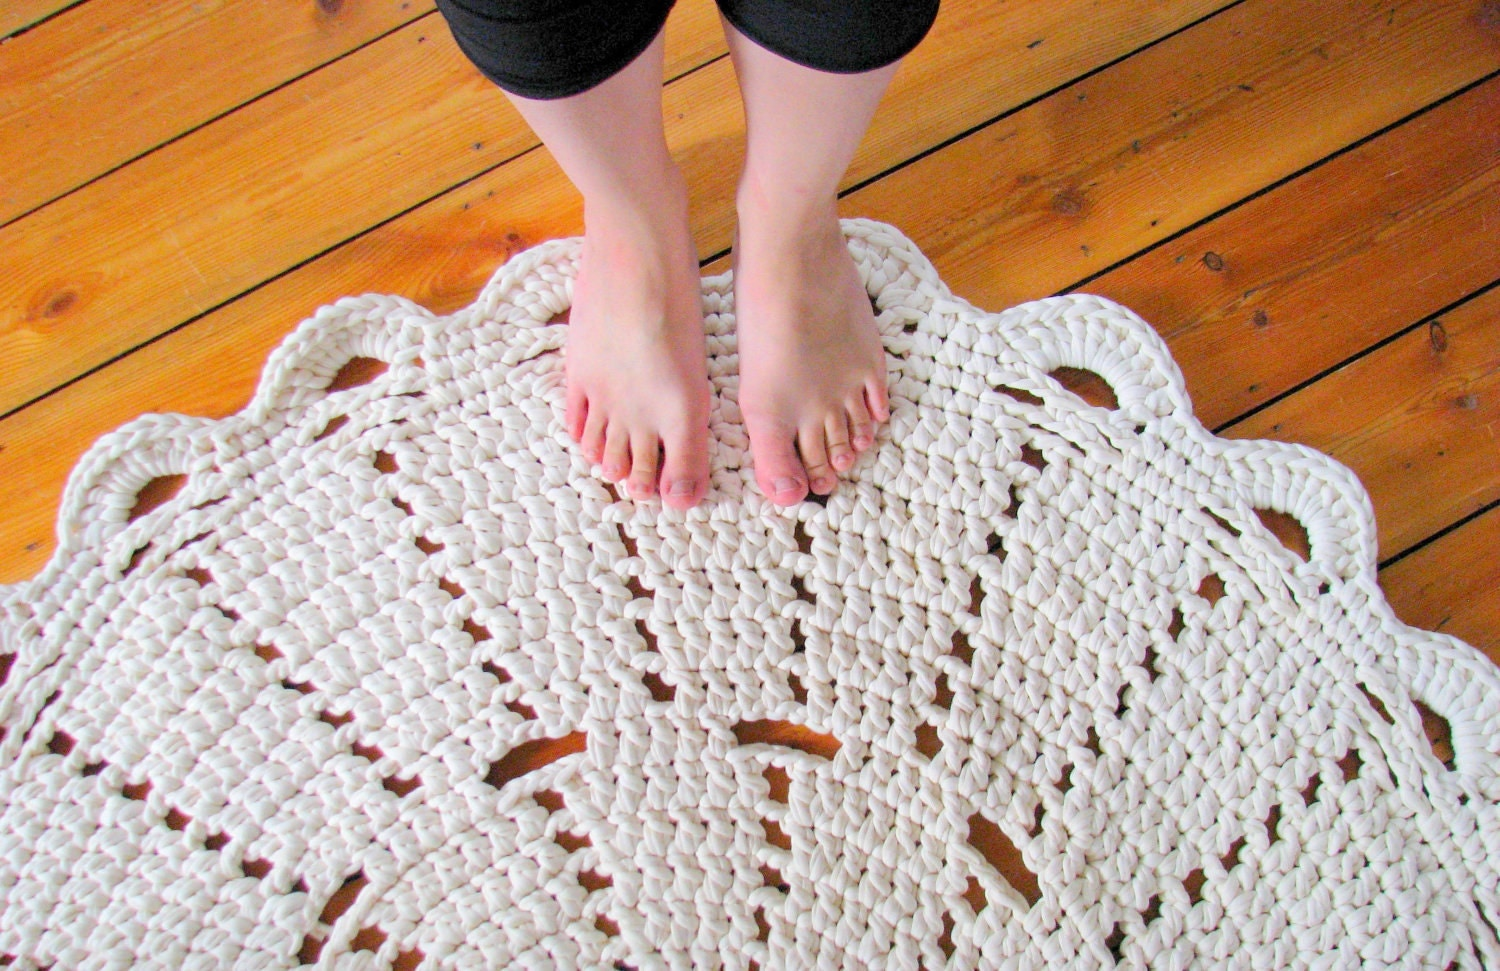 Crocheting Yarn For Beginners : THREAD CROCHET DOILY PATTERNS Crochet For Beginners